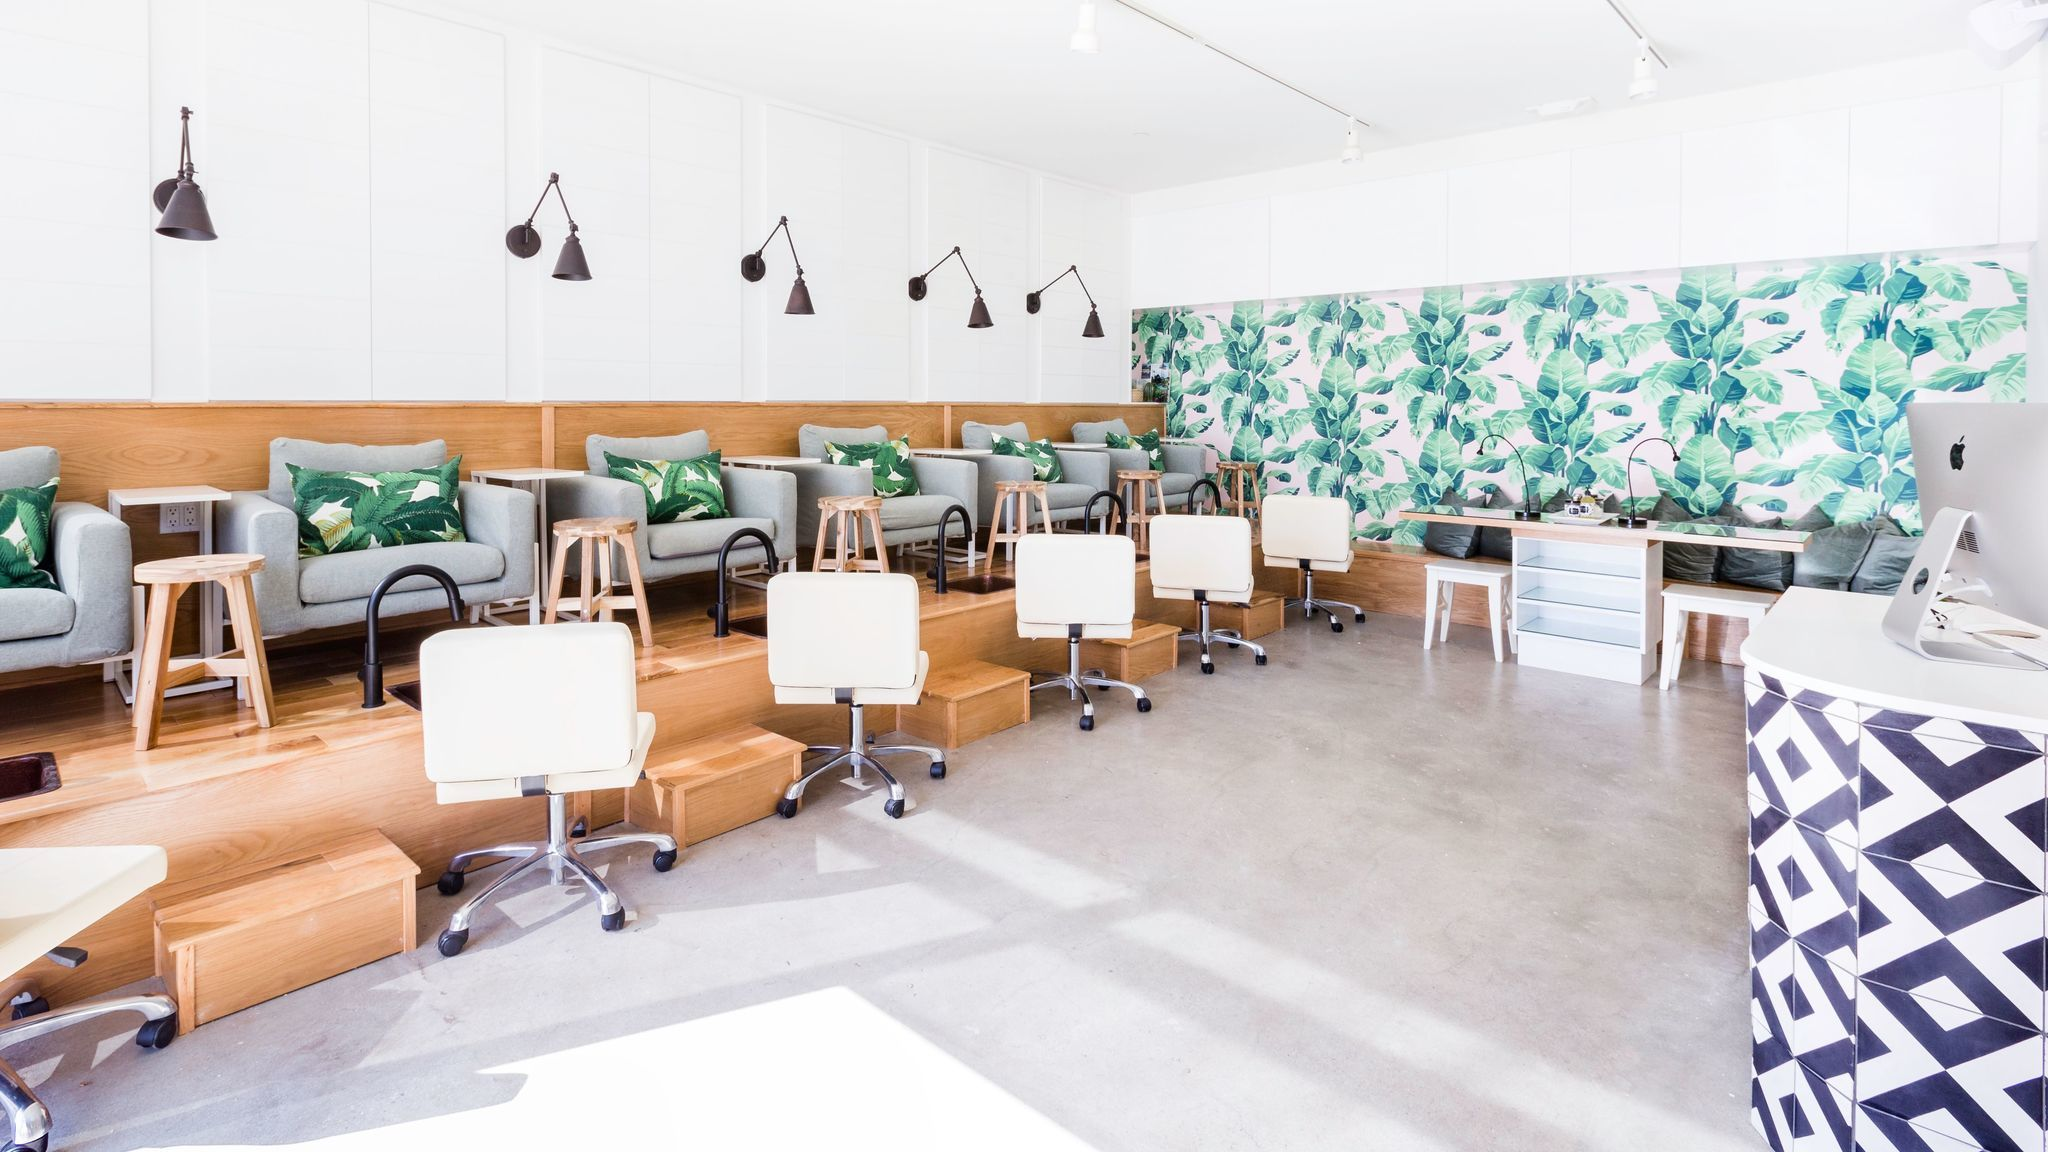 The second L.A. location of non-toxic nail salon Base Coat opened in November on Fairfax Avenue.